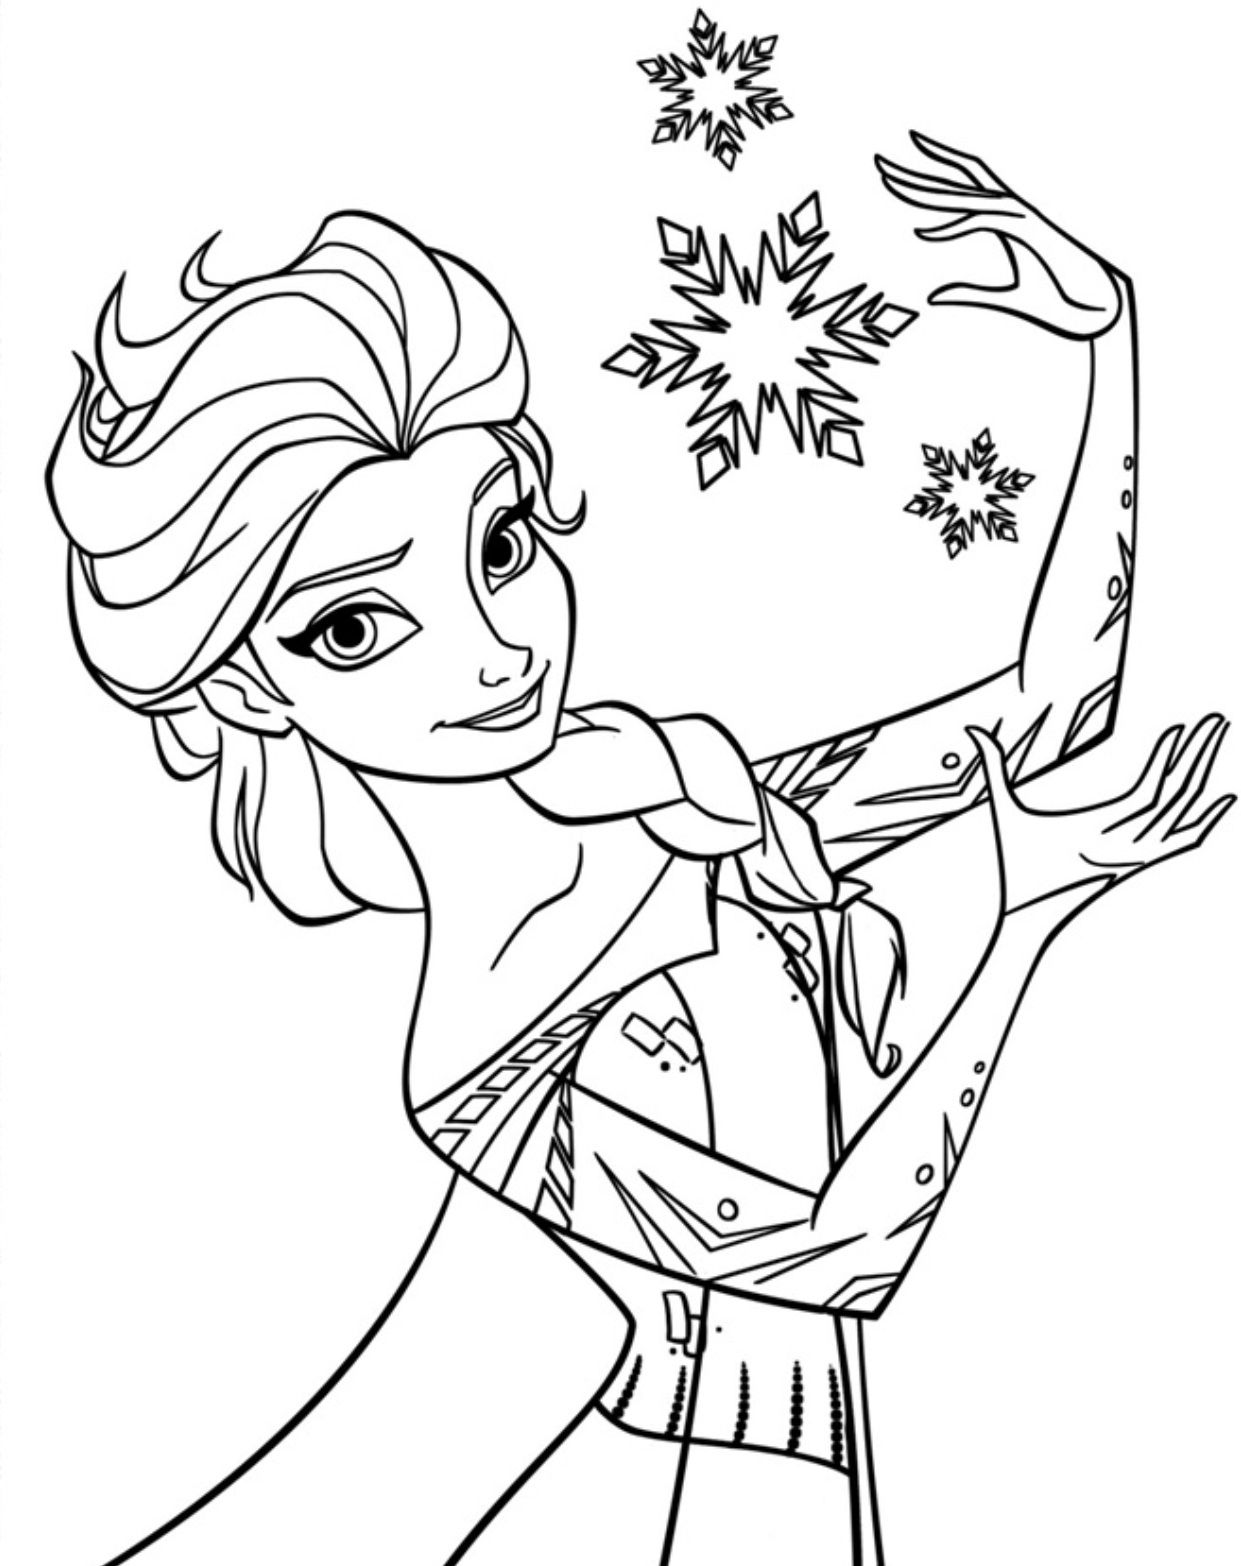 free elsa coloring pages Free Printable Elsa Coloring Pages for Kids | Elsa | Pinterest  free elsa coloring pages